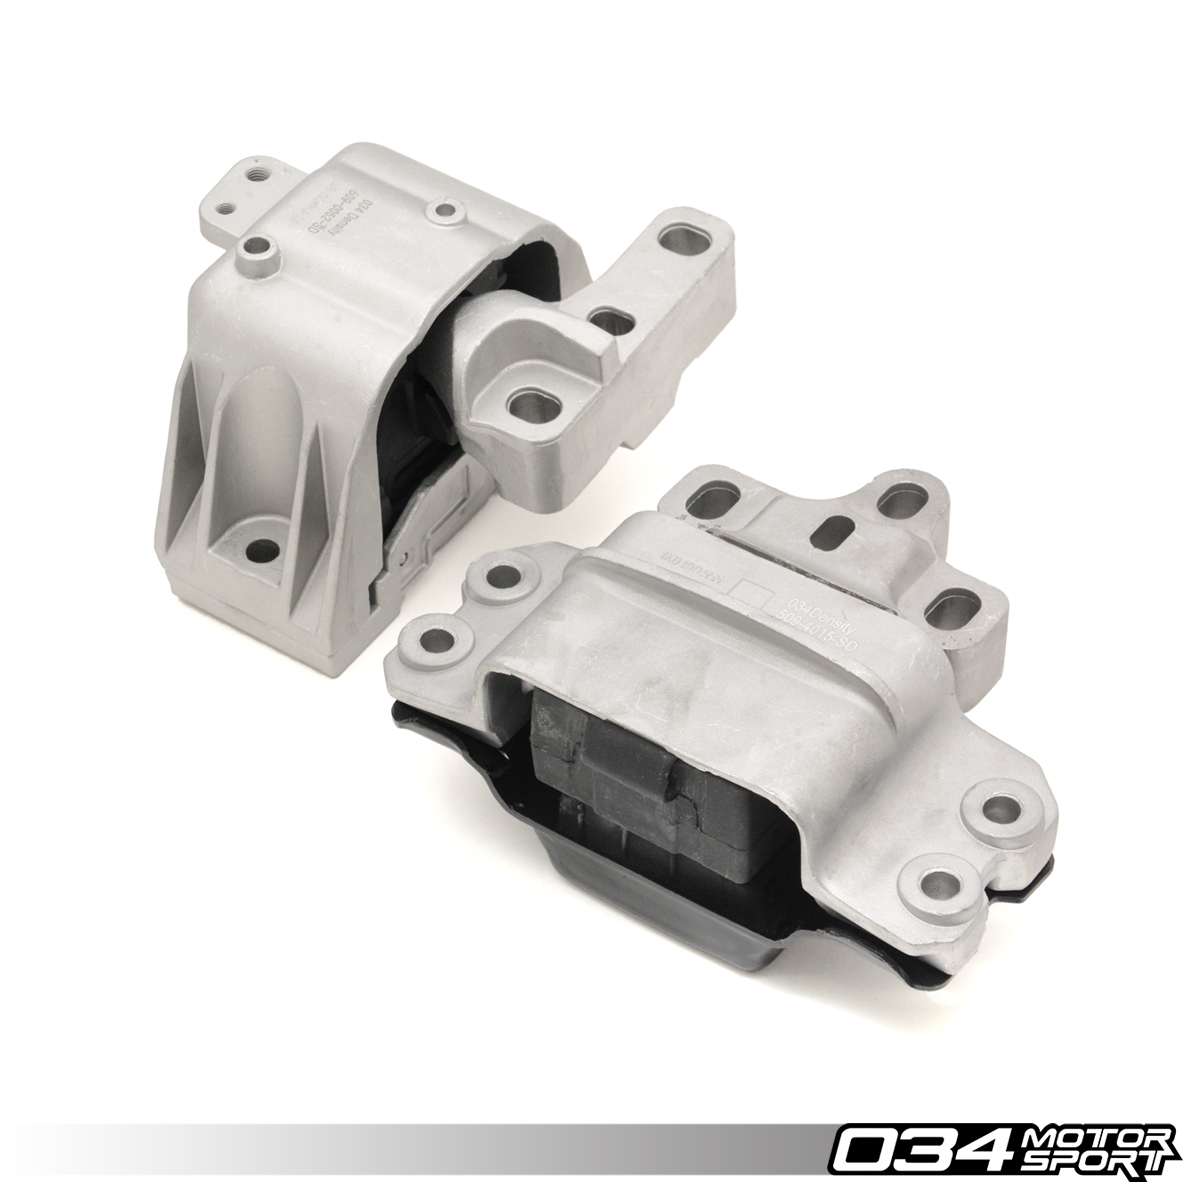 Motor Mount Pair Density Line Audi J P A Tt Volkswagen Mkv Mkvi Golf Jetta Gti Gli T Fsi on 2004 Audi A4 1 8t Engine